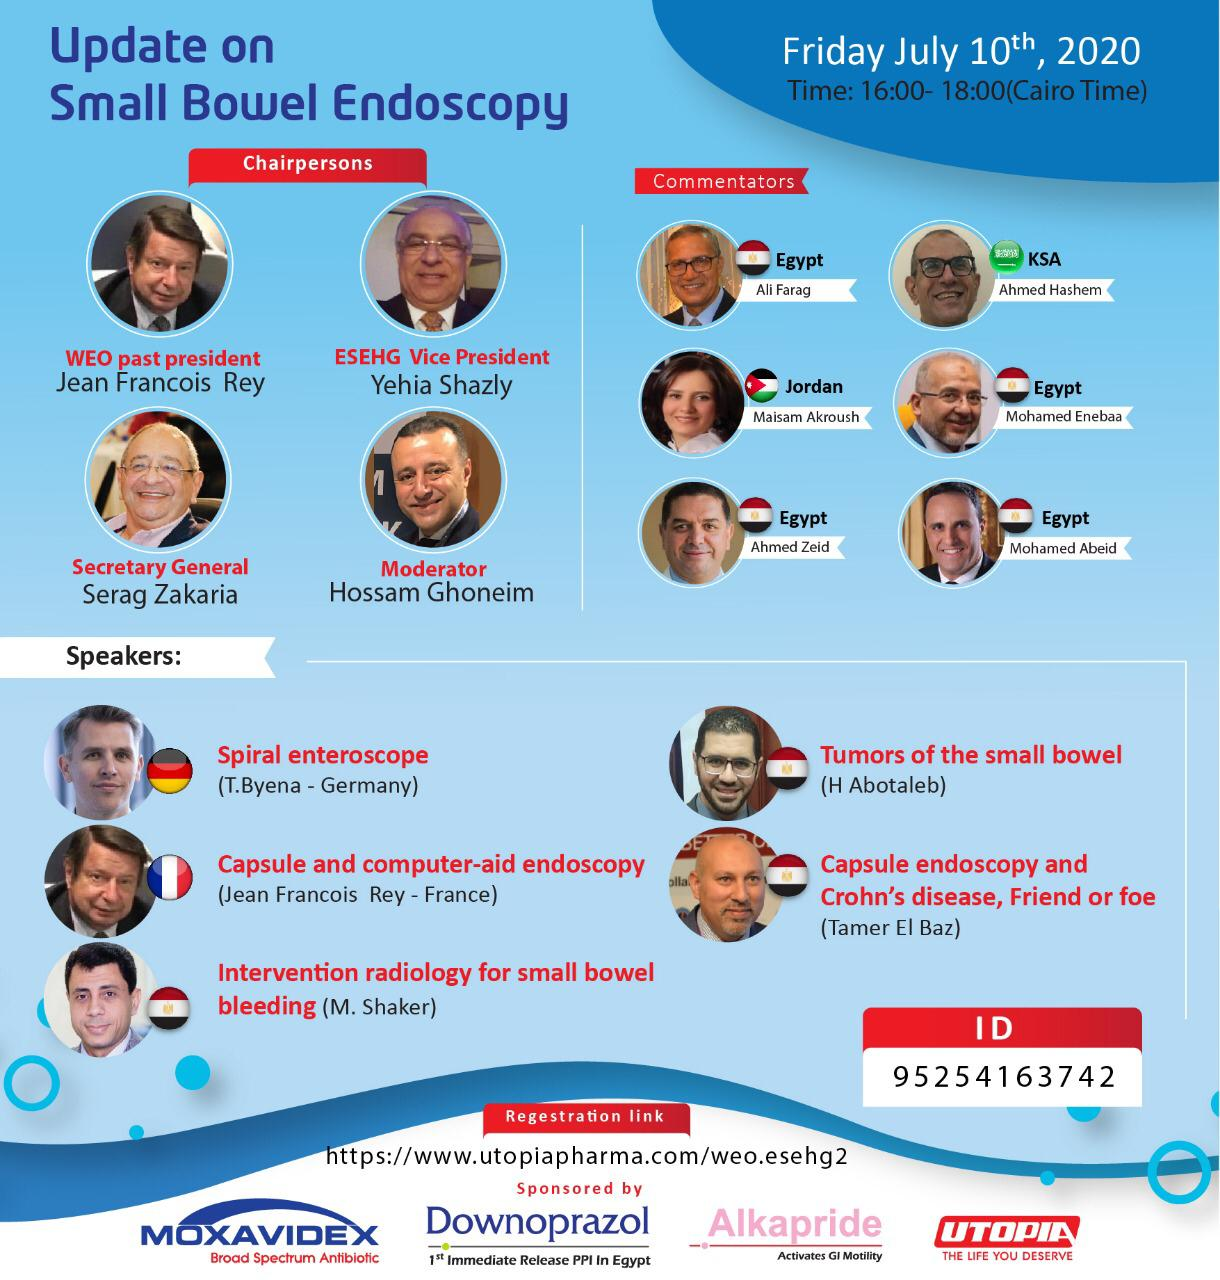 Update on Small Bowel Endoscopy